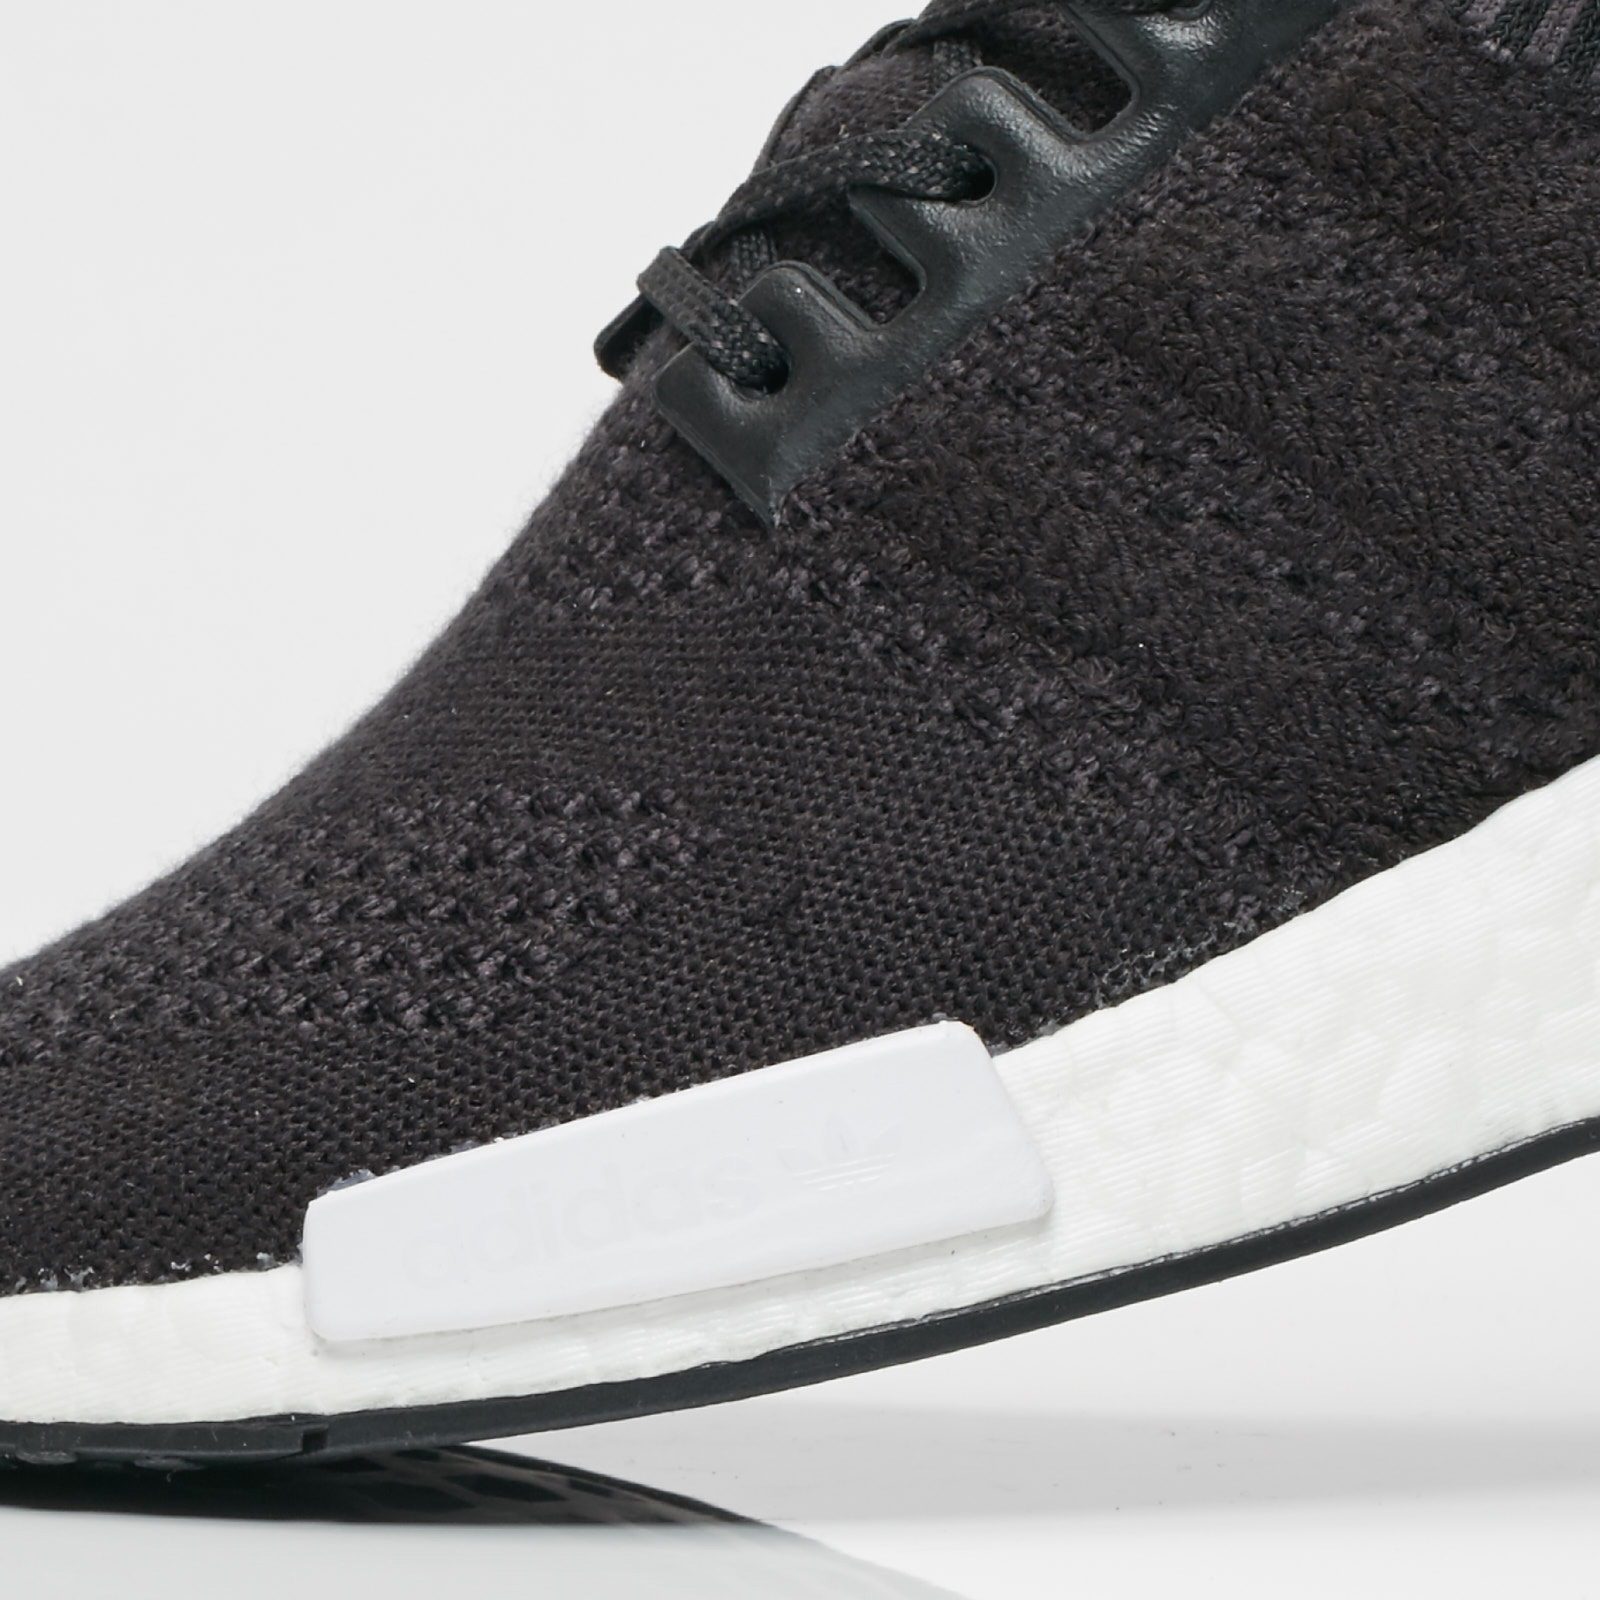 finest selection 58b76 5c69d ... adidas Consortium NMD R1  A Ma Maniere x Invincible ...